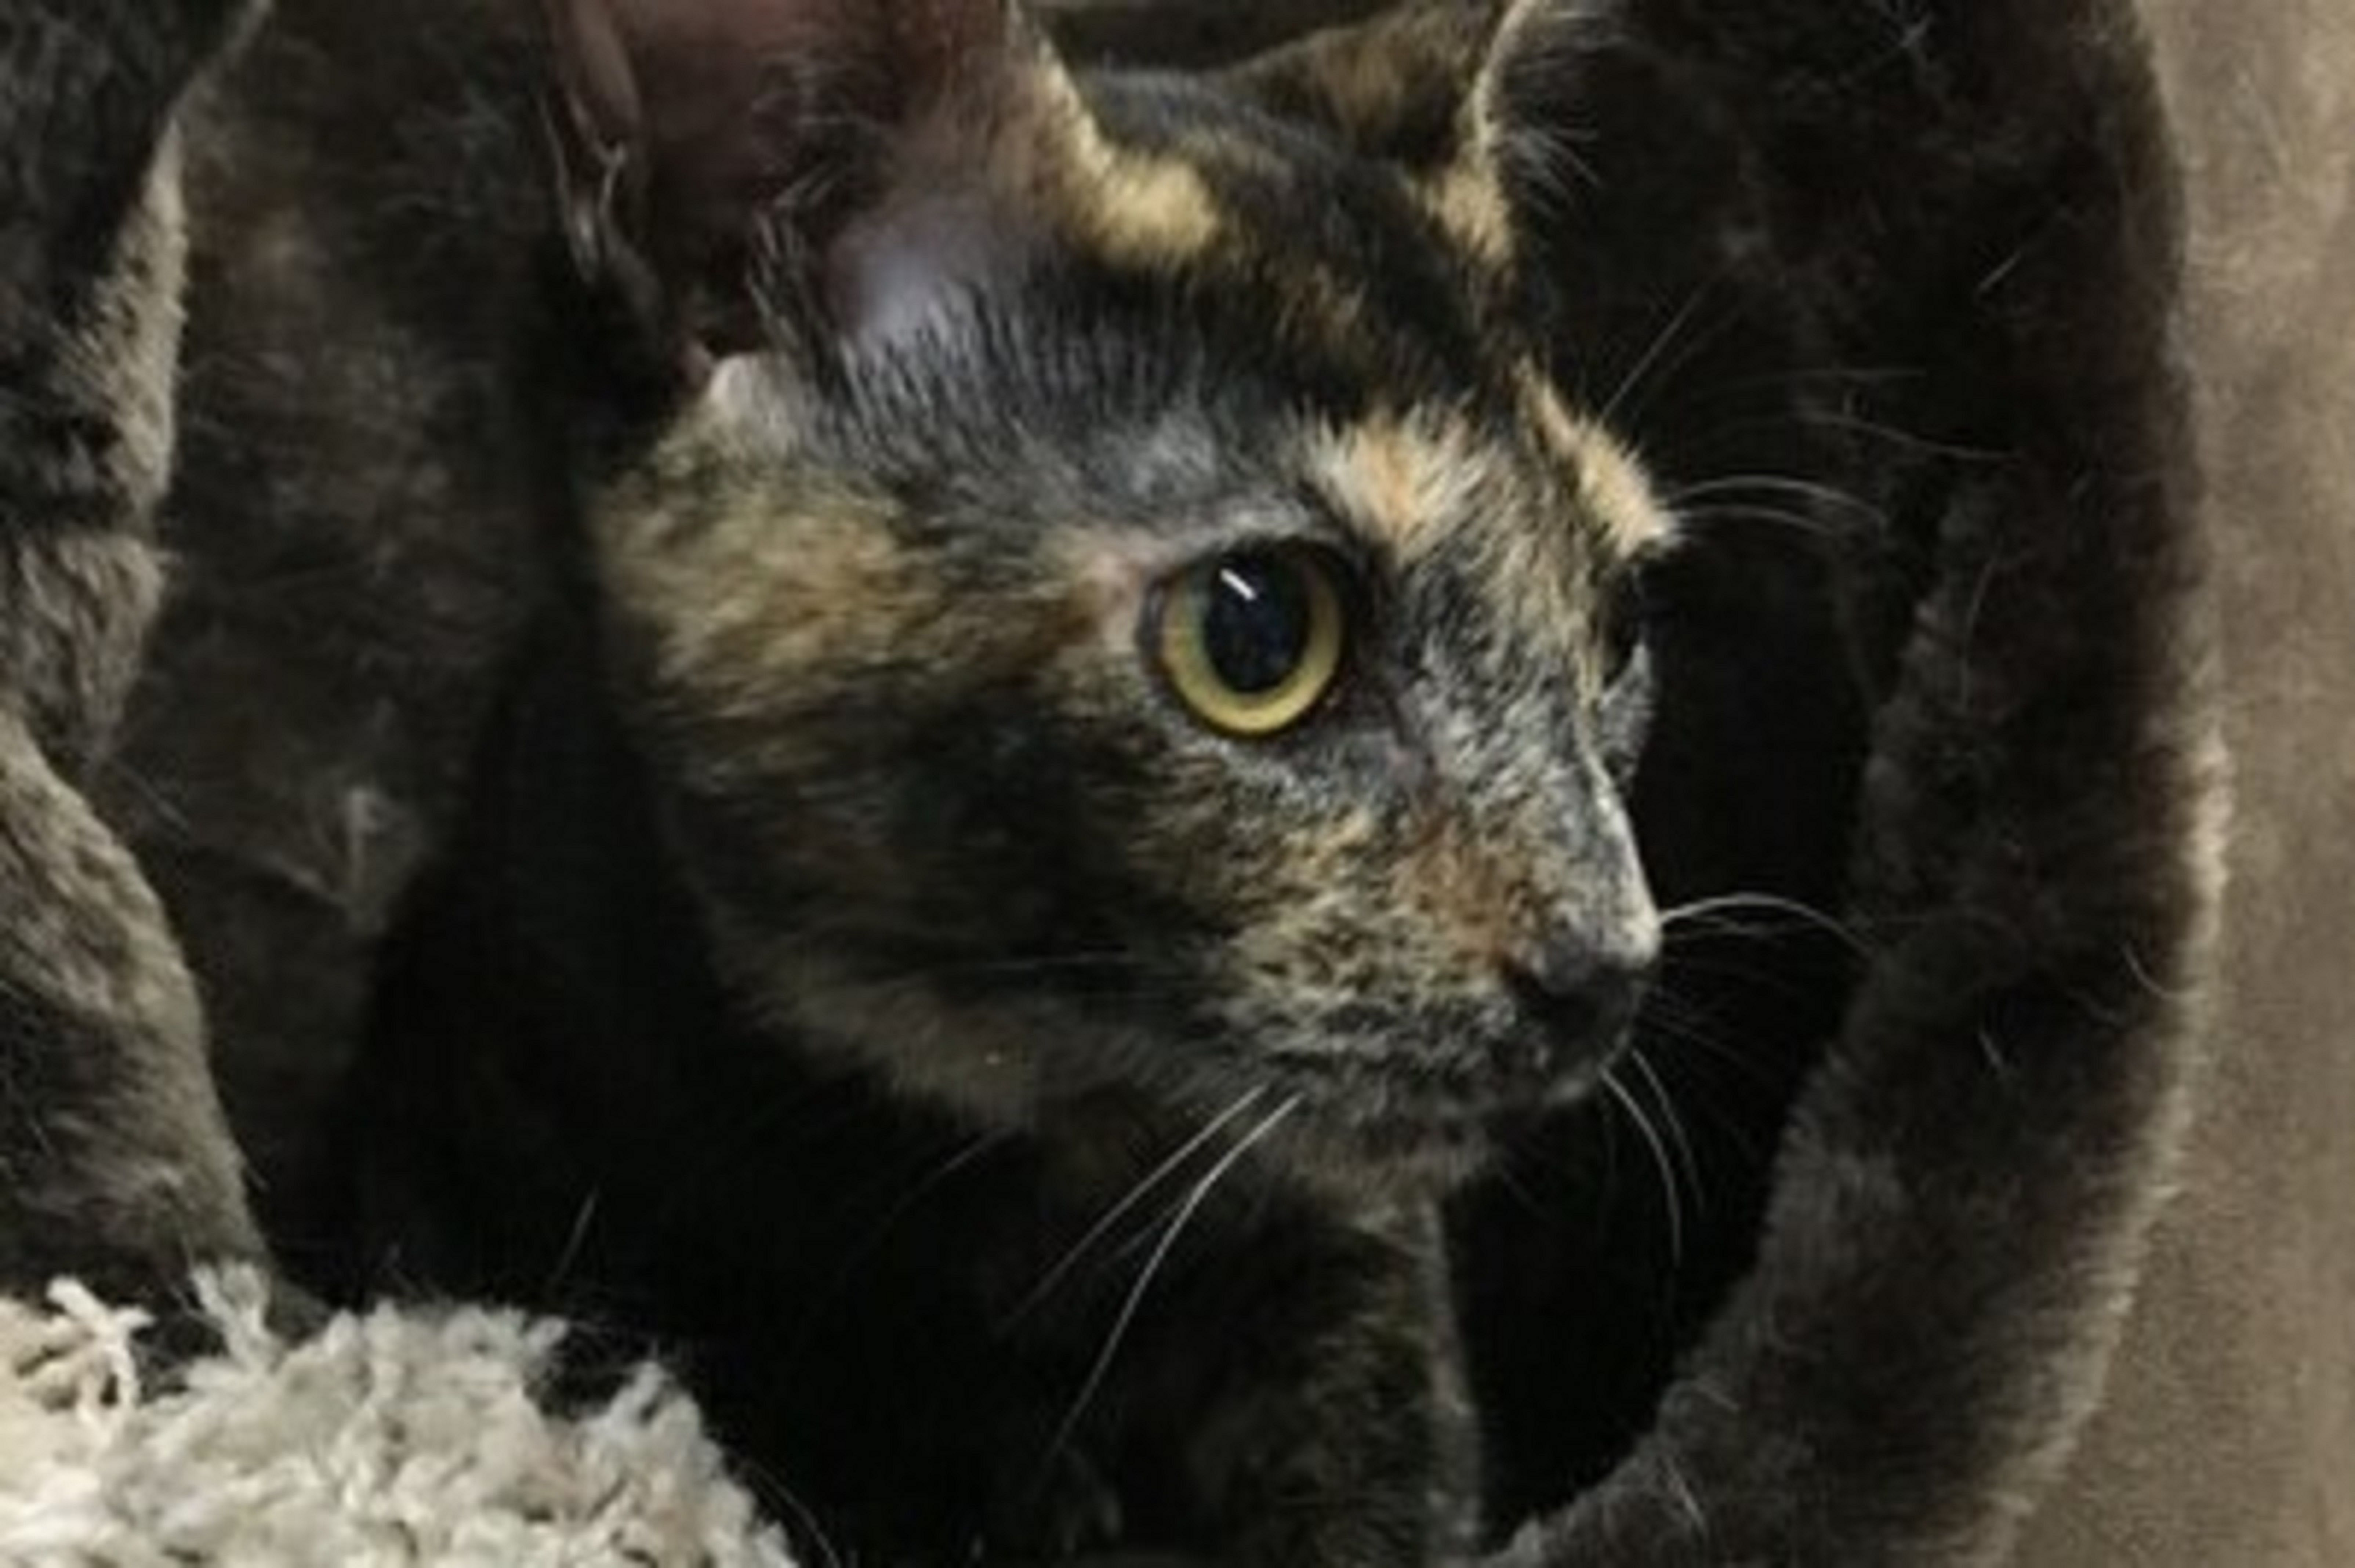 Flower Is A 6 Month Old Female Tortoiseshell Mix Kitten Who Was Born On Easter She Is Shy But Curious And Playful A Dog Adoption Raining Cats And Dogs Pets